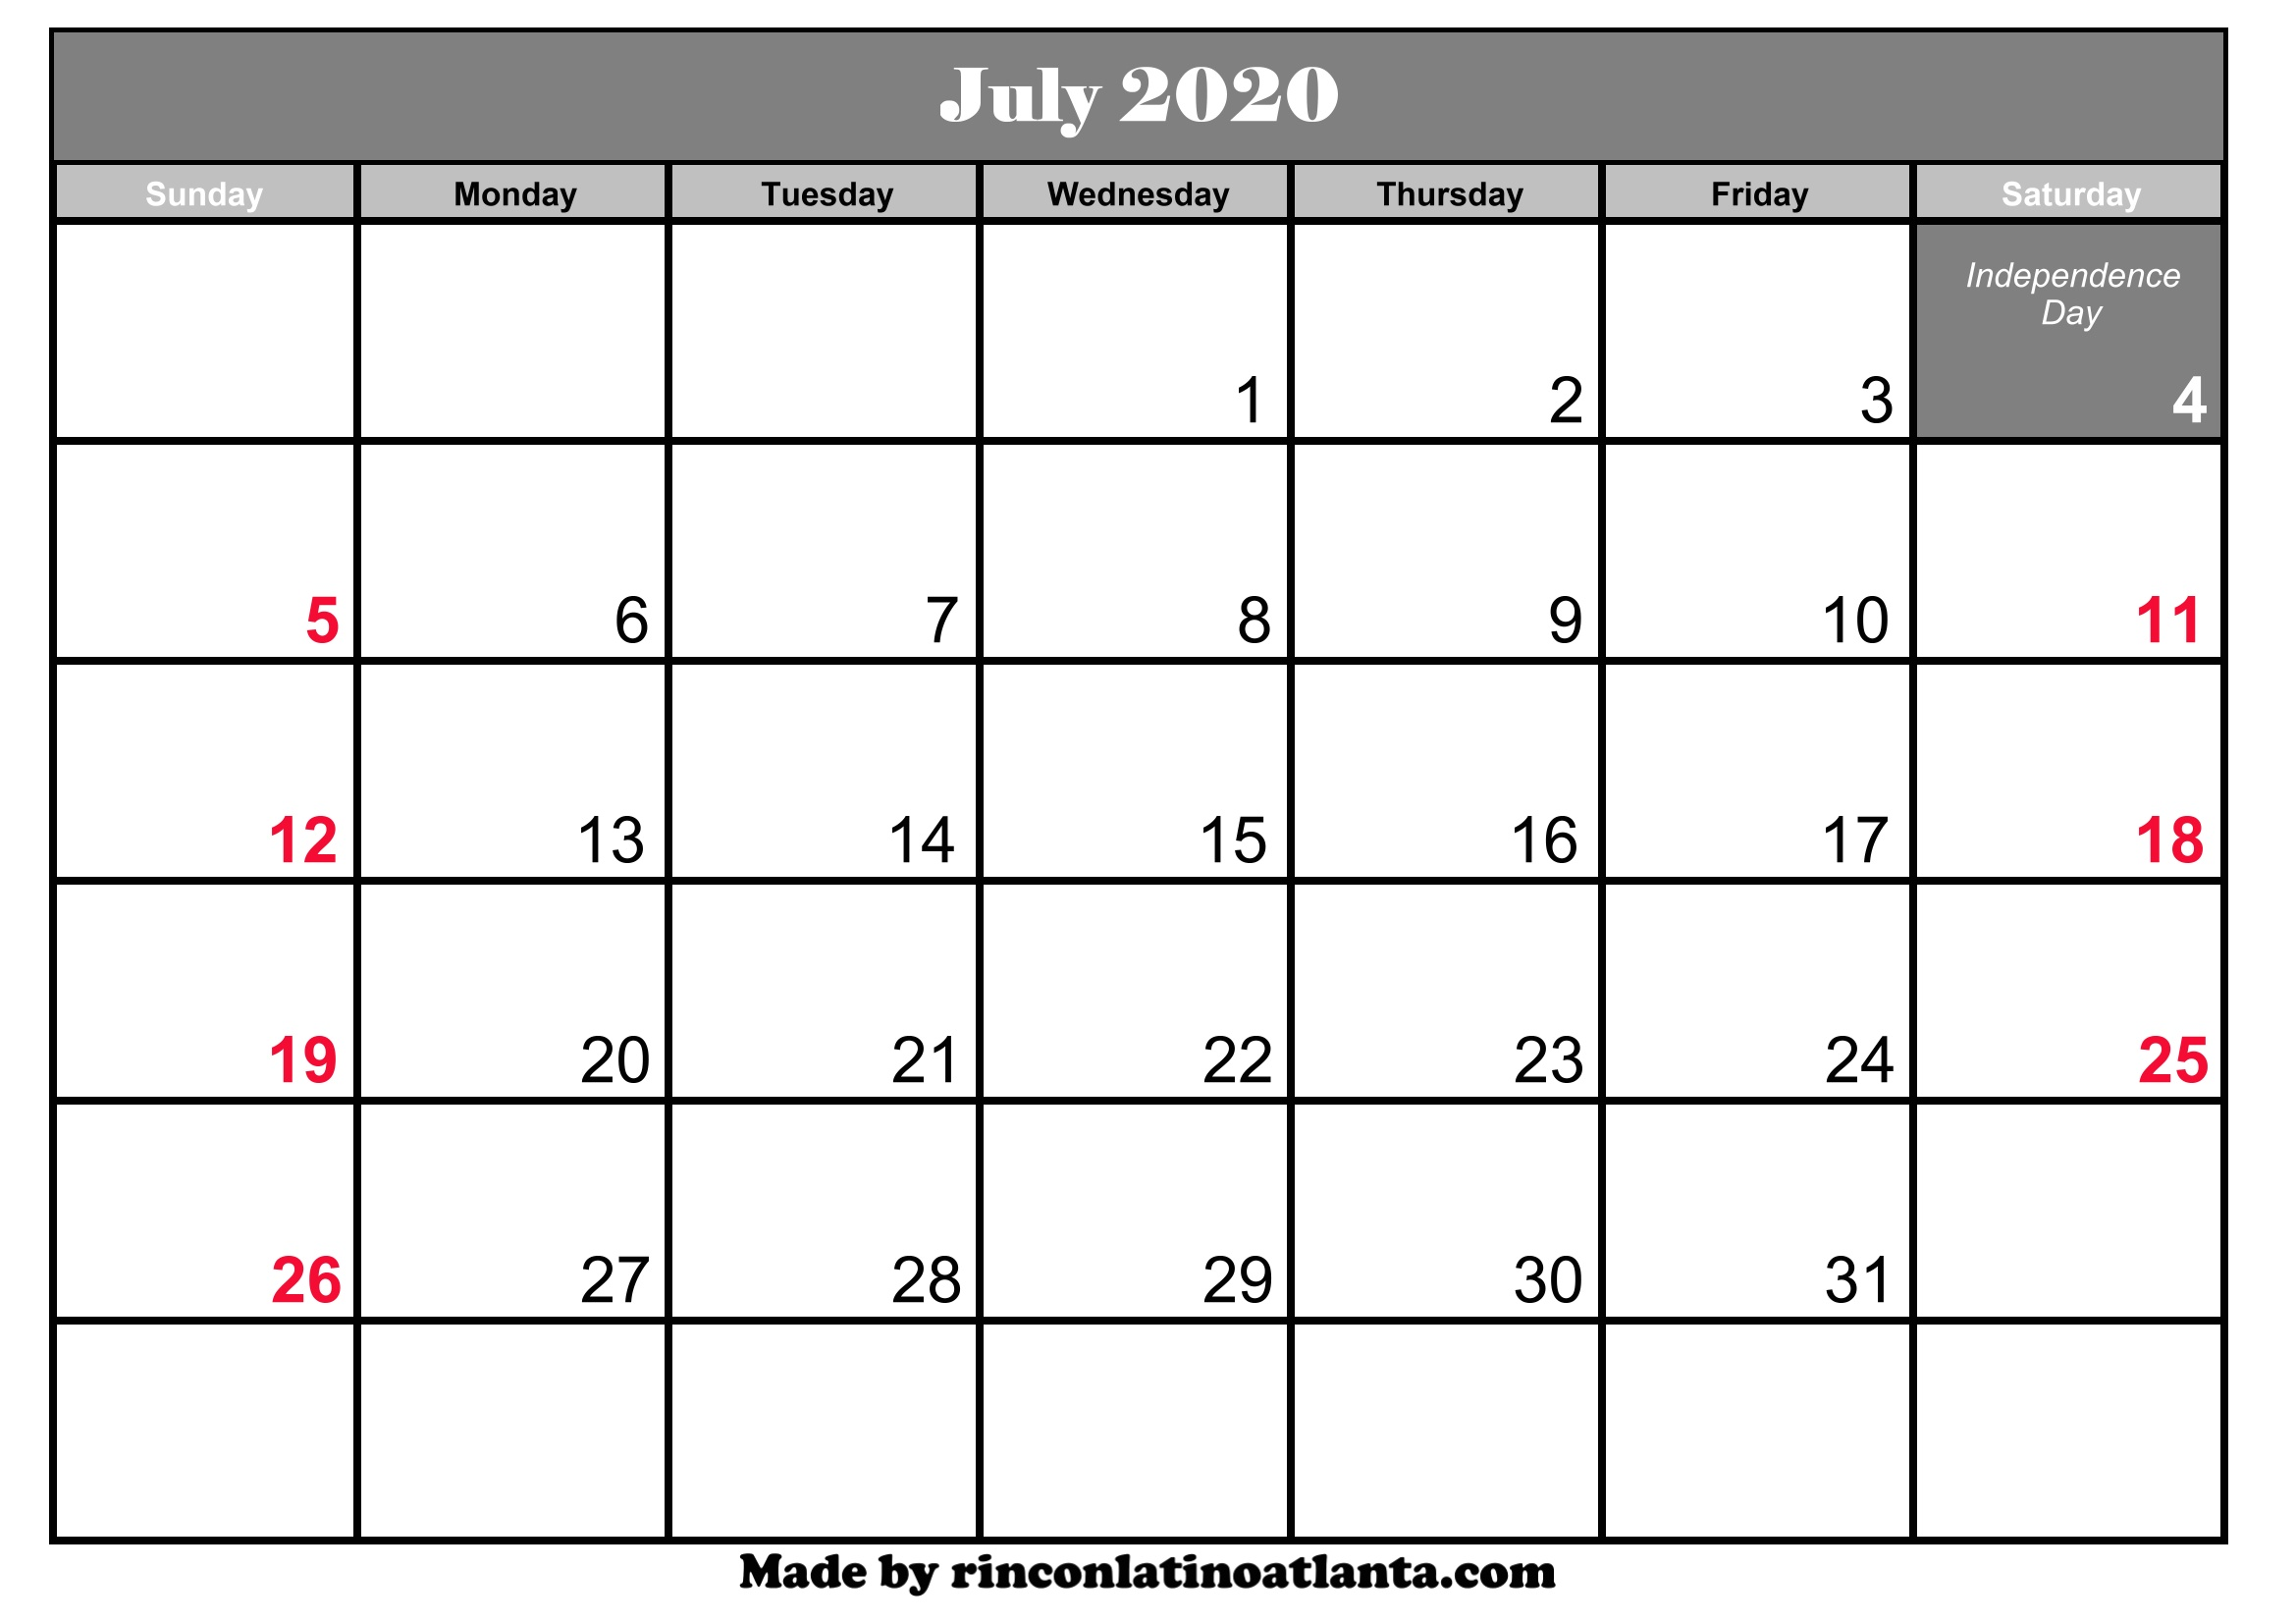 Printable Calendar July 2020.July 2020 Calendar Printable With Holidays Calendar Template Printable